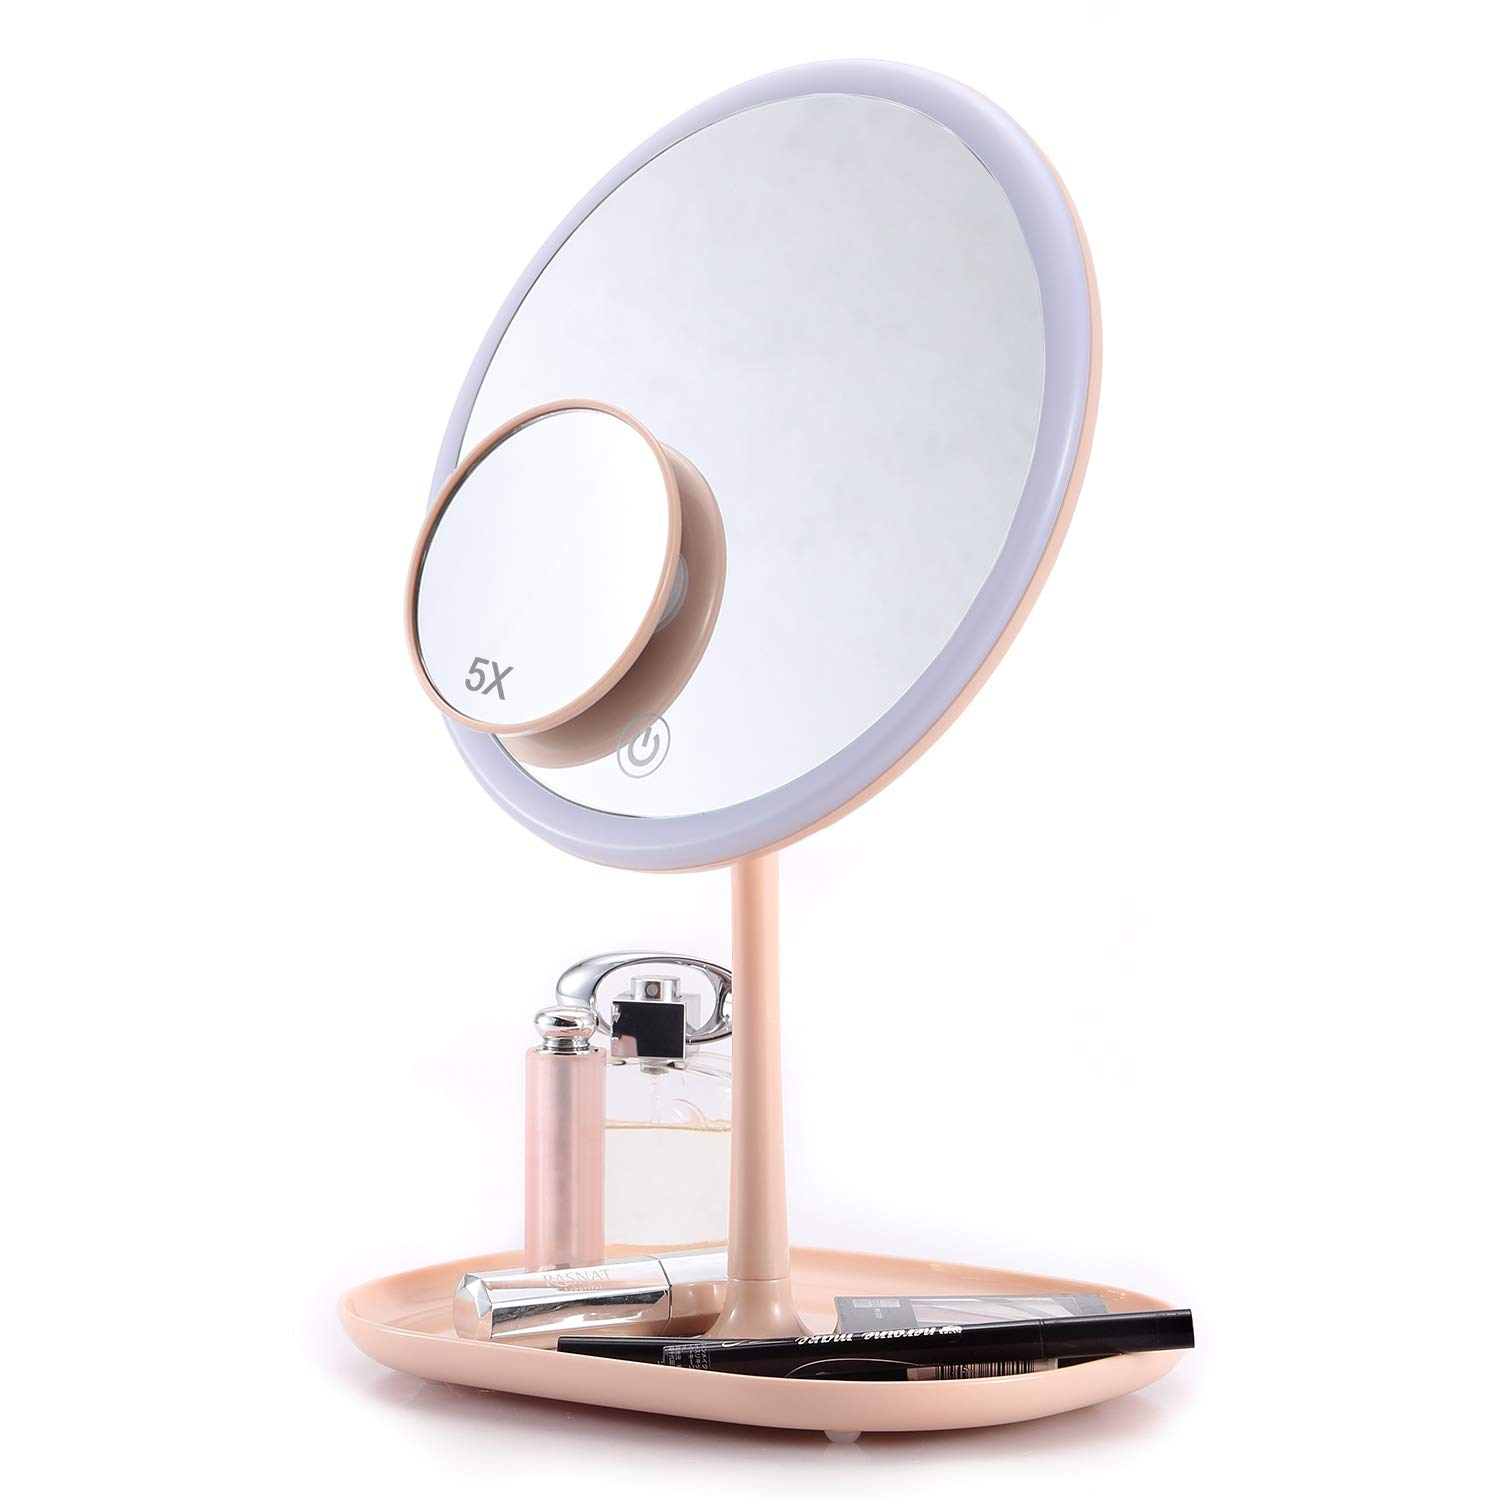 Lighted Makeup Mirror, 8 Inch LED Vanity Mirror with 5X Magnifying Spot Mirror, USB Rechargeable, Adjustable Brightness Touch Screen Storage Base Pink